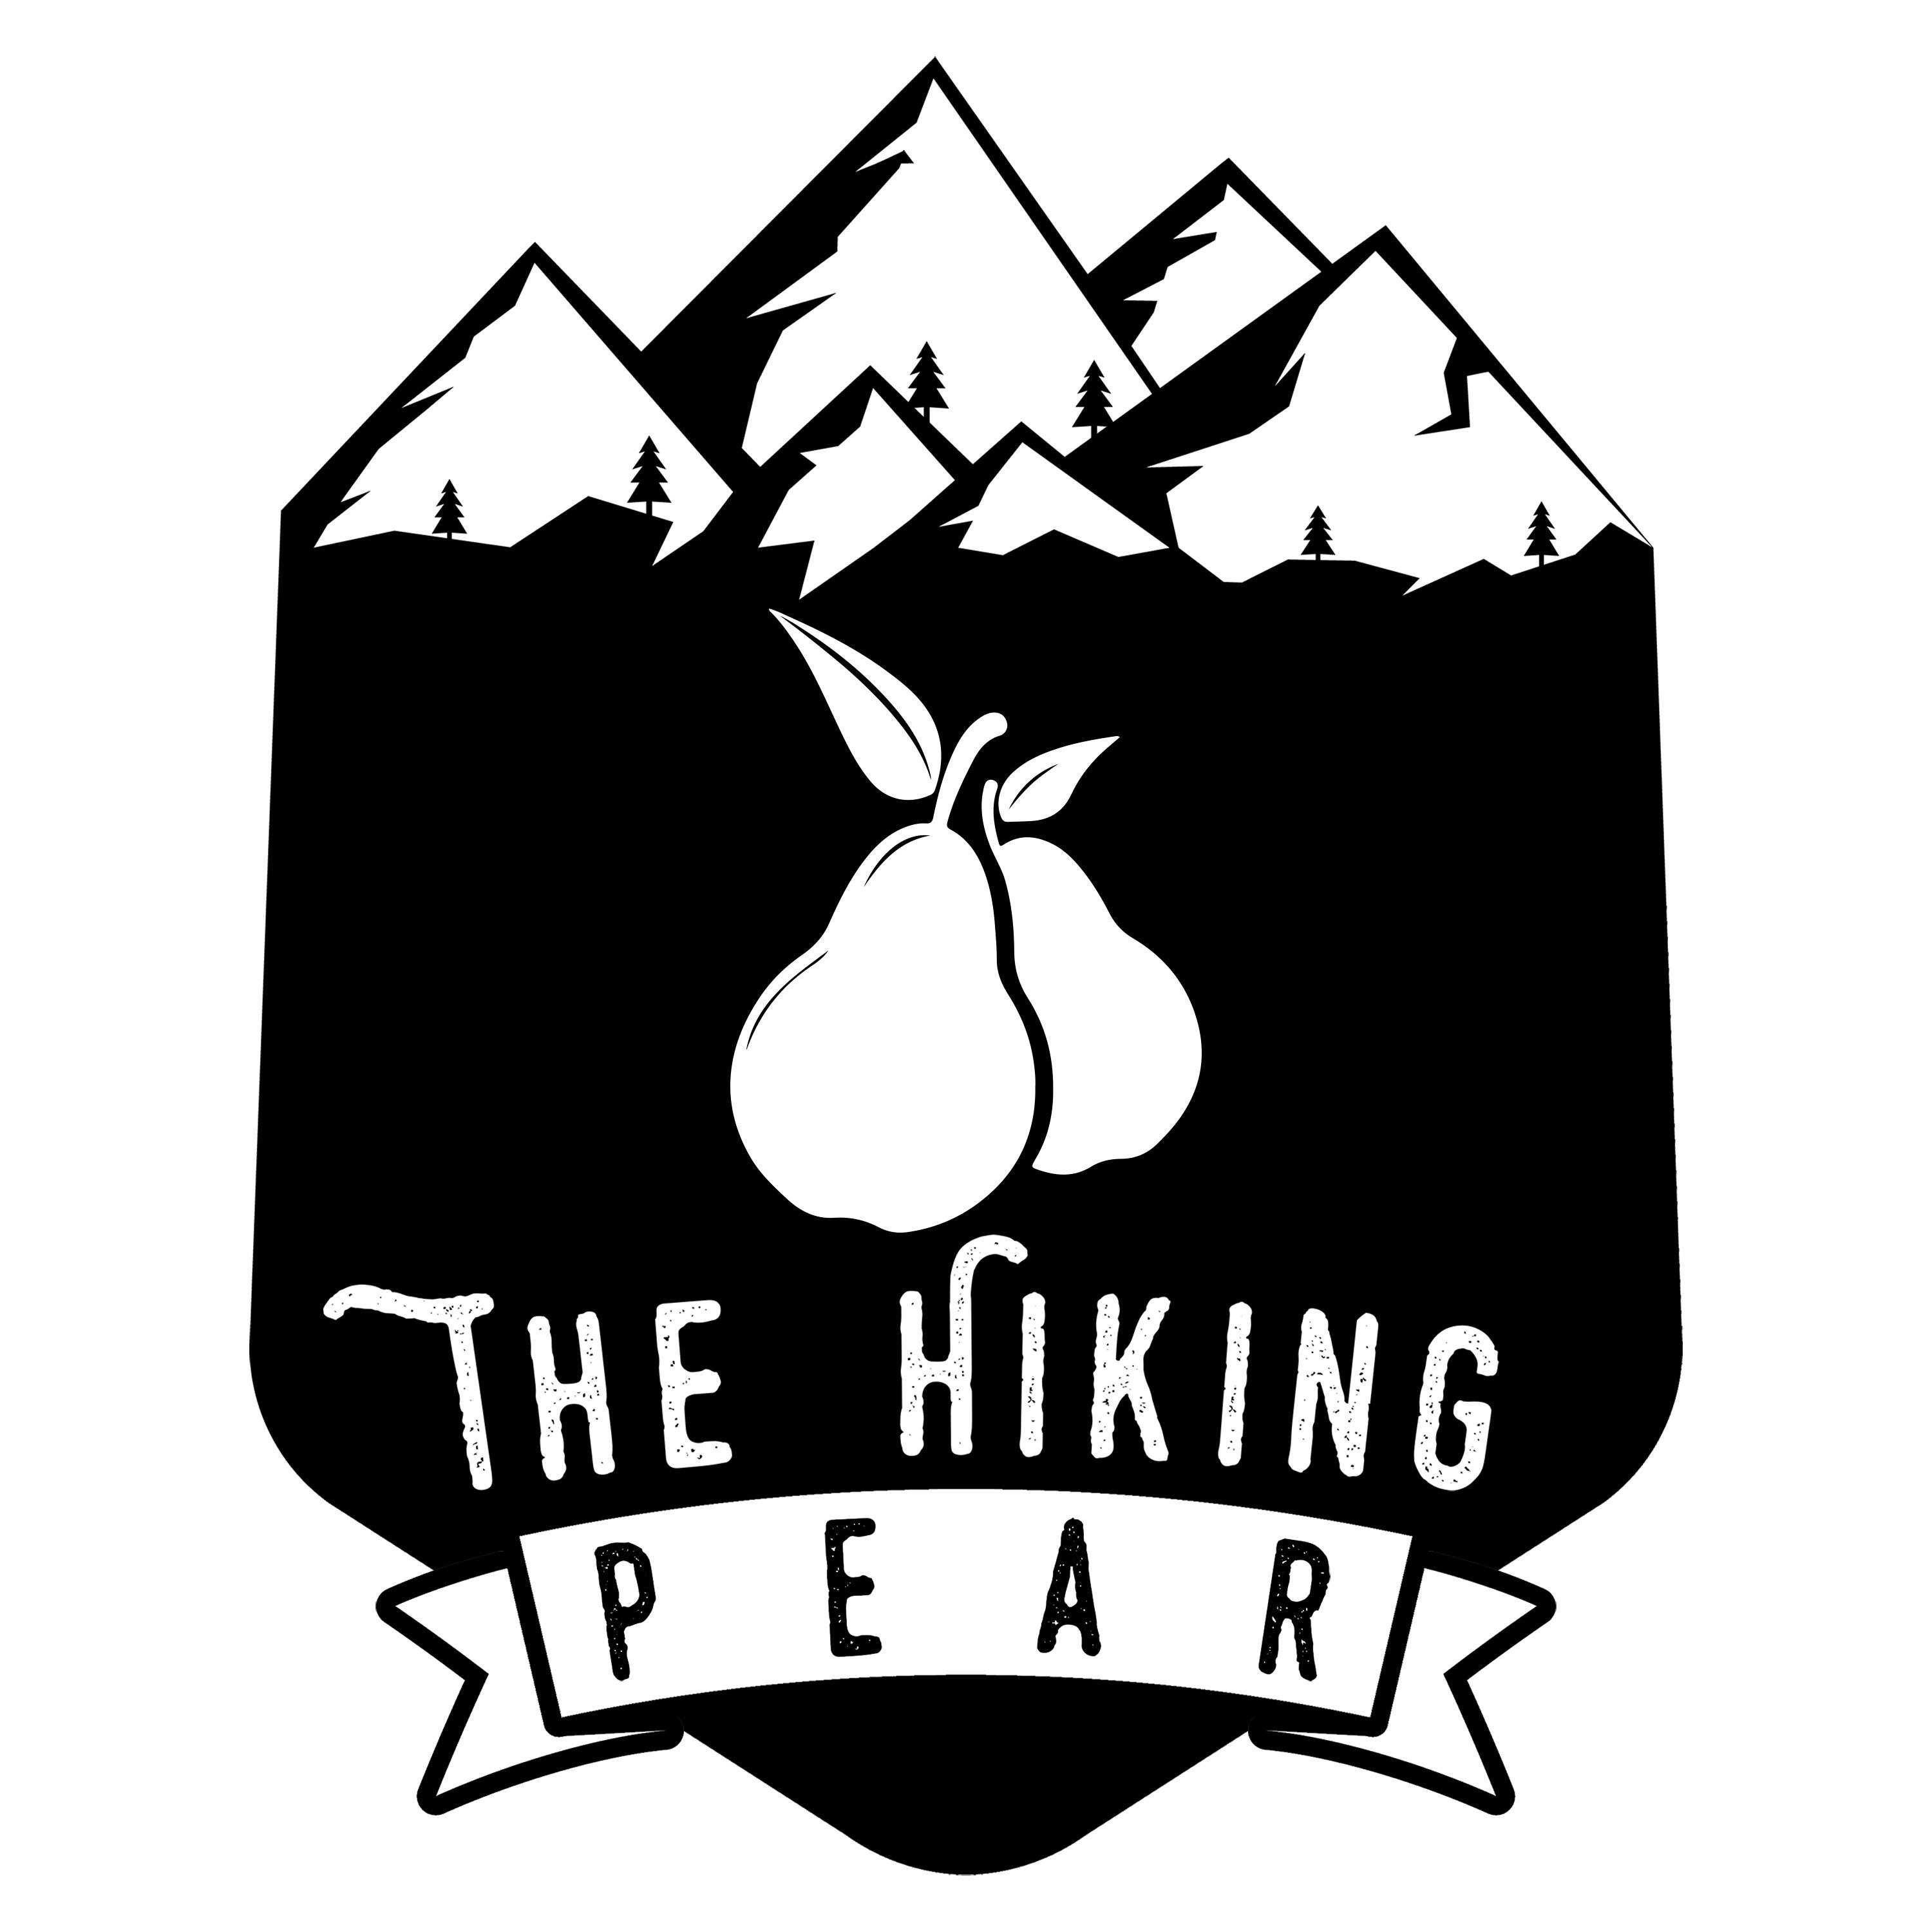 The Hiking Pear